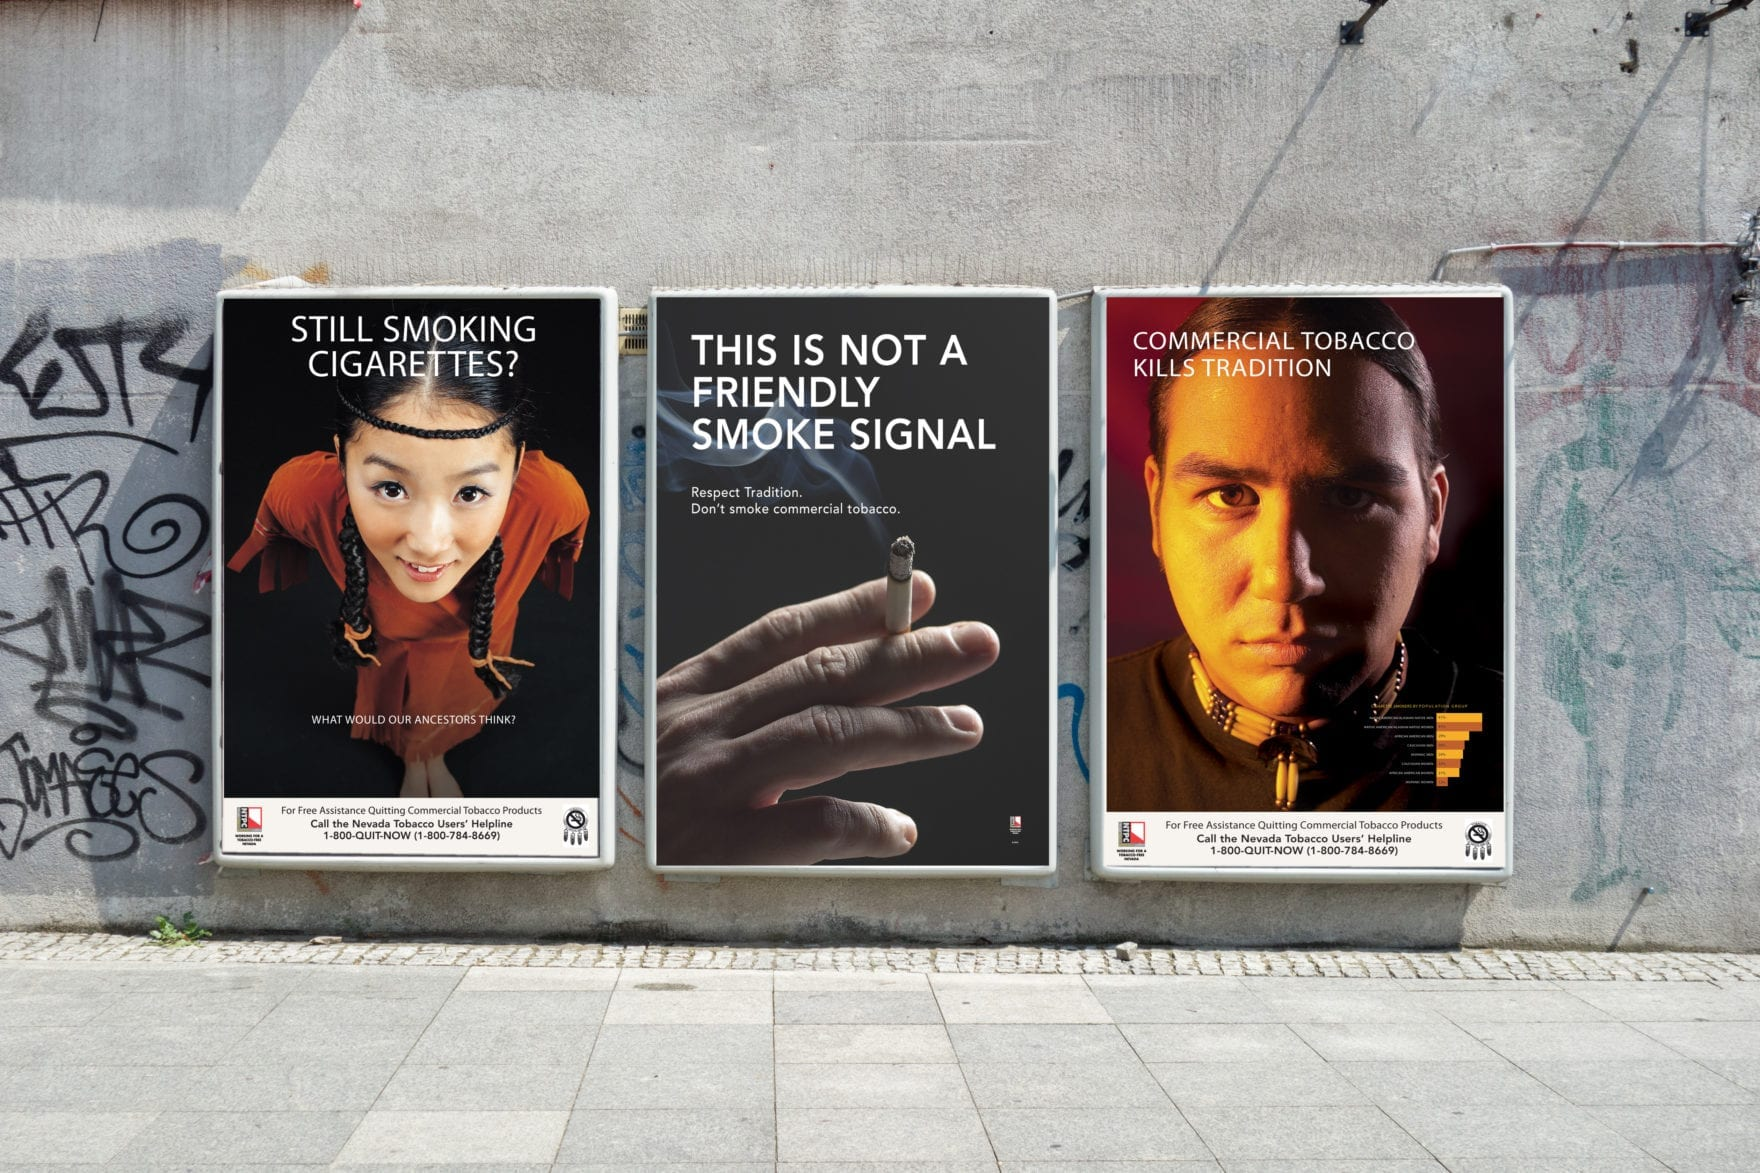 3 billboards display an anti-smoking campaign, designed by Canyon Creative